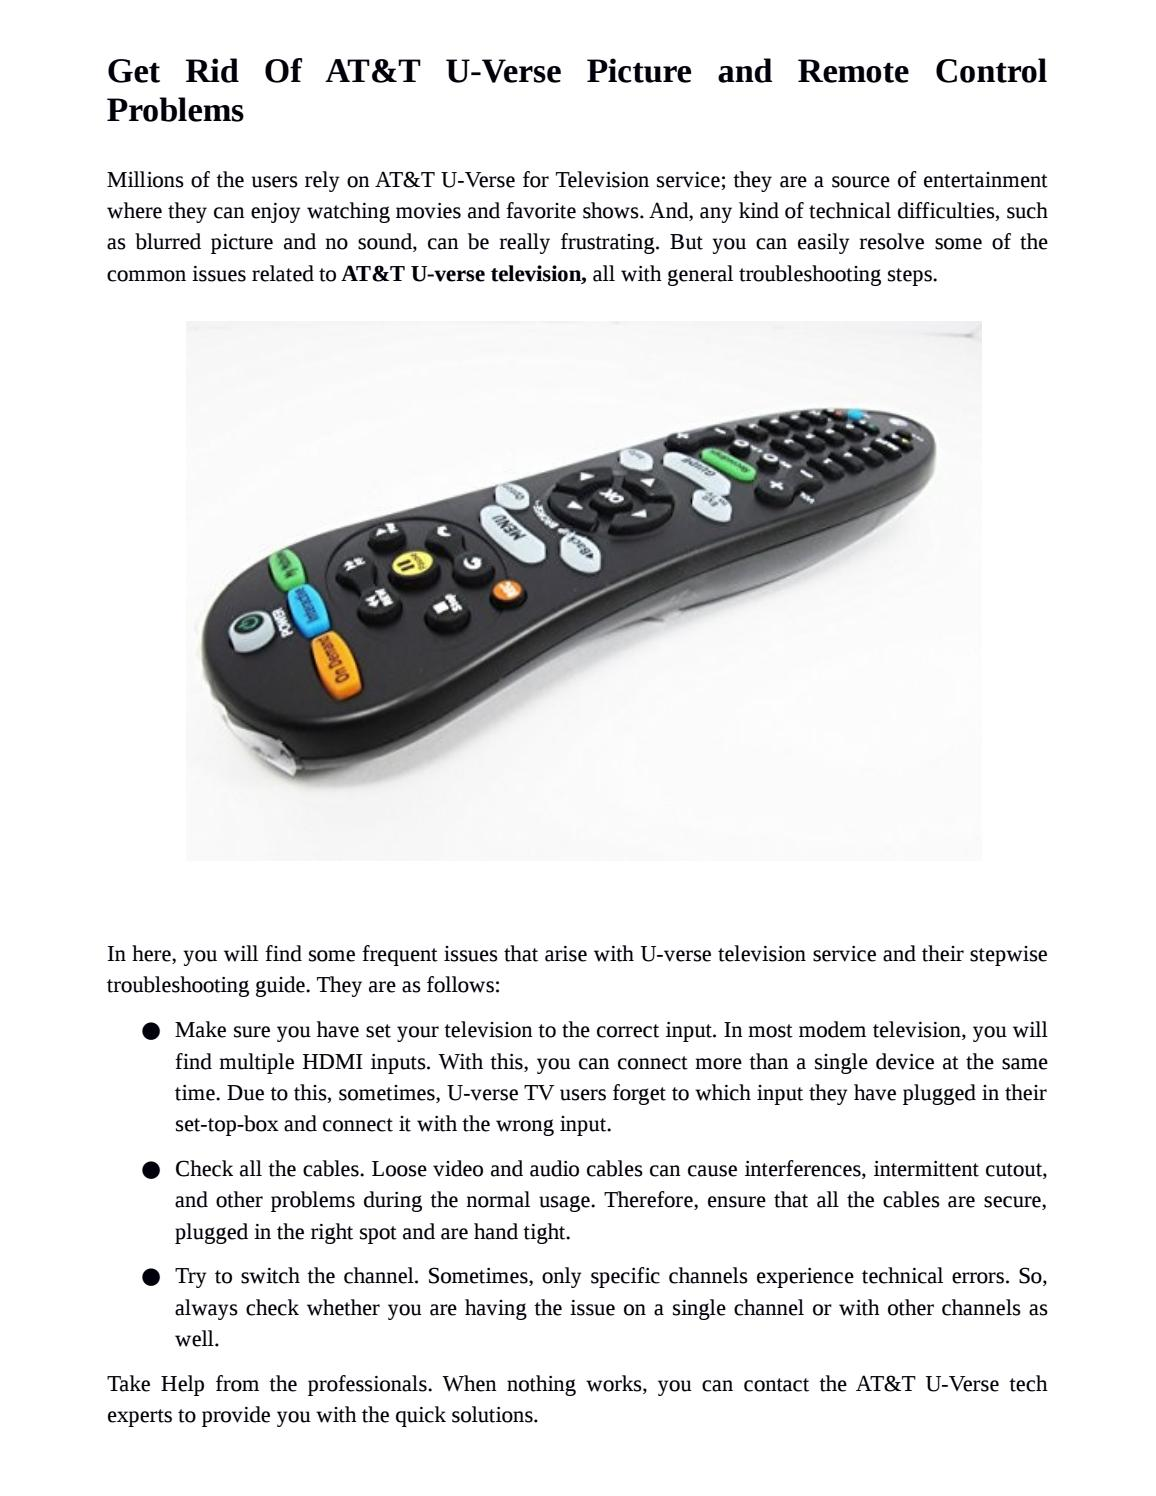 At&t uverse sj 3 feb 2018 by David Early - issuu